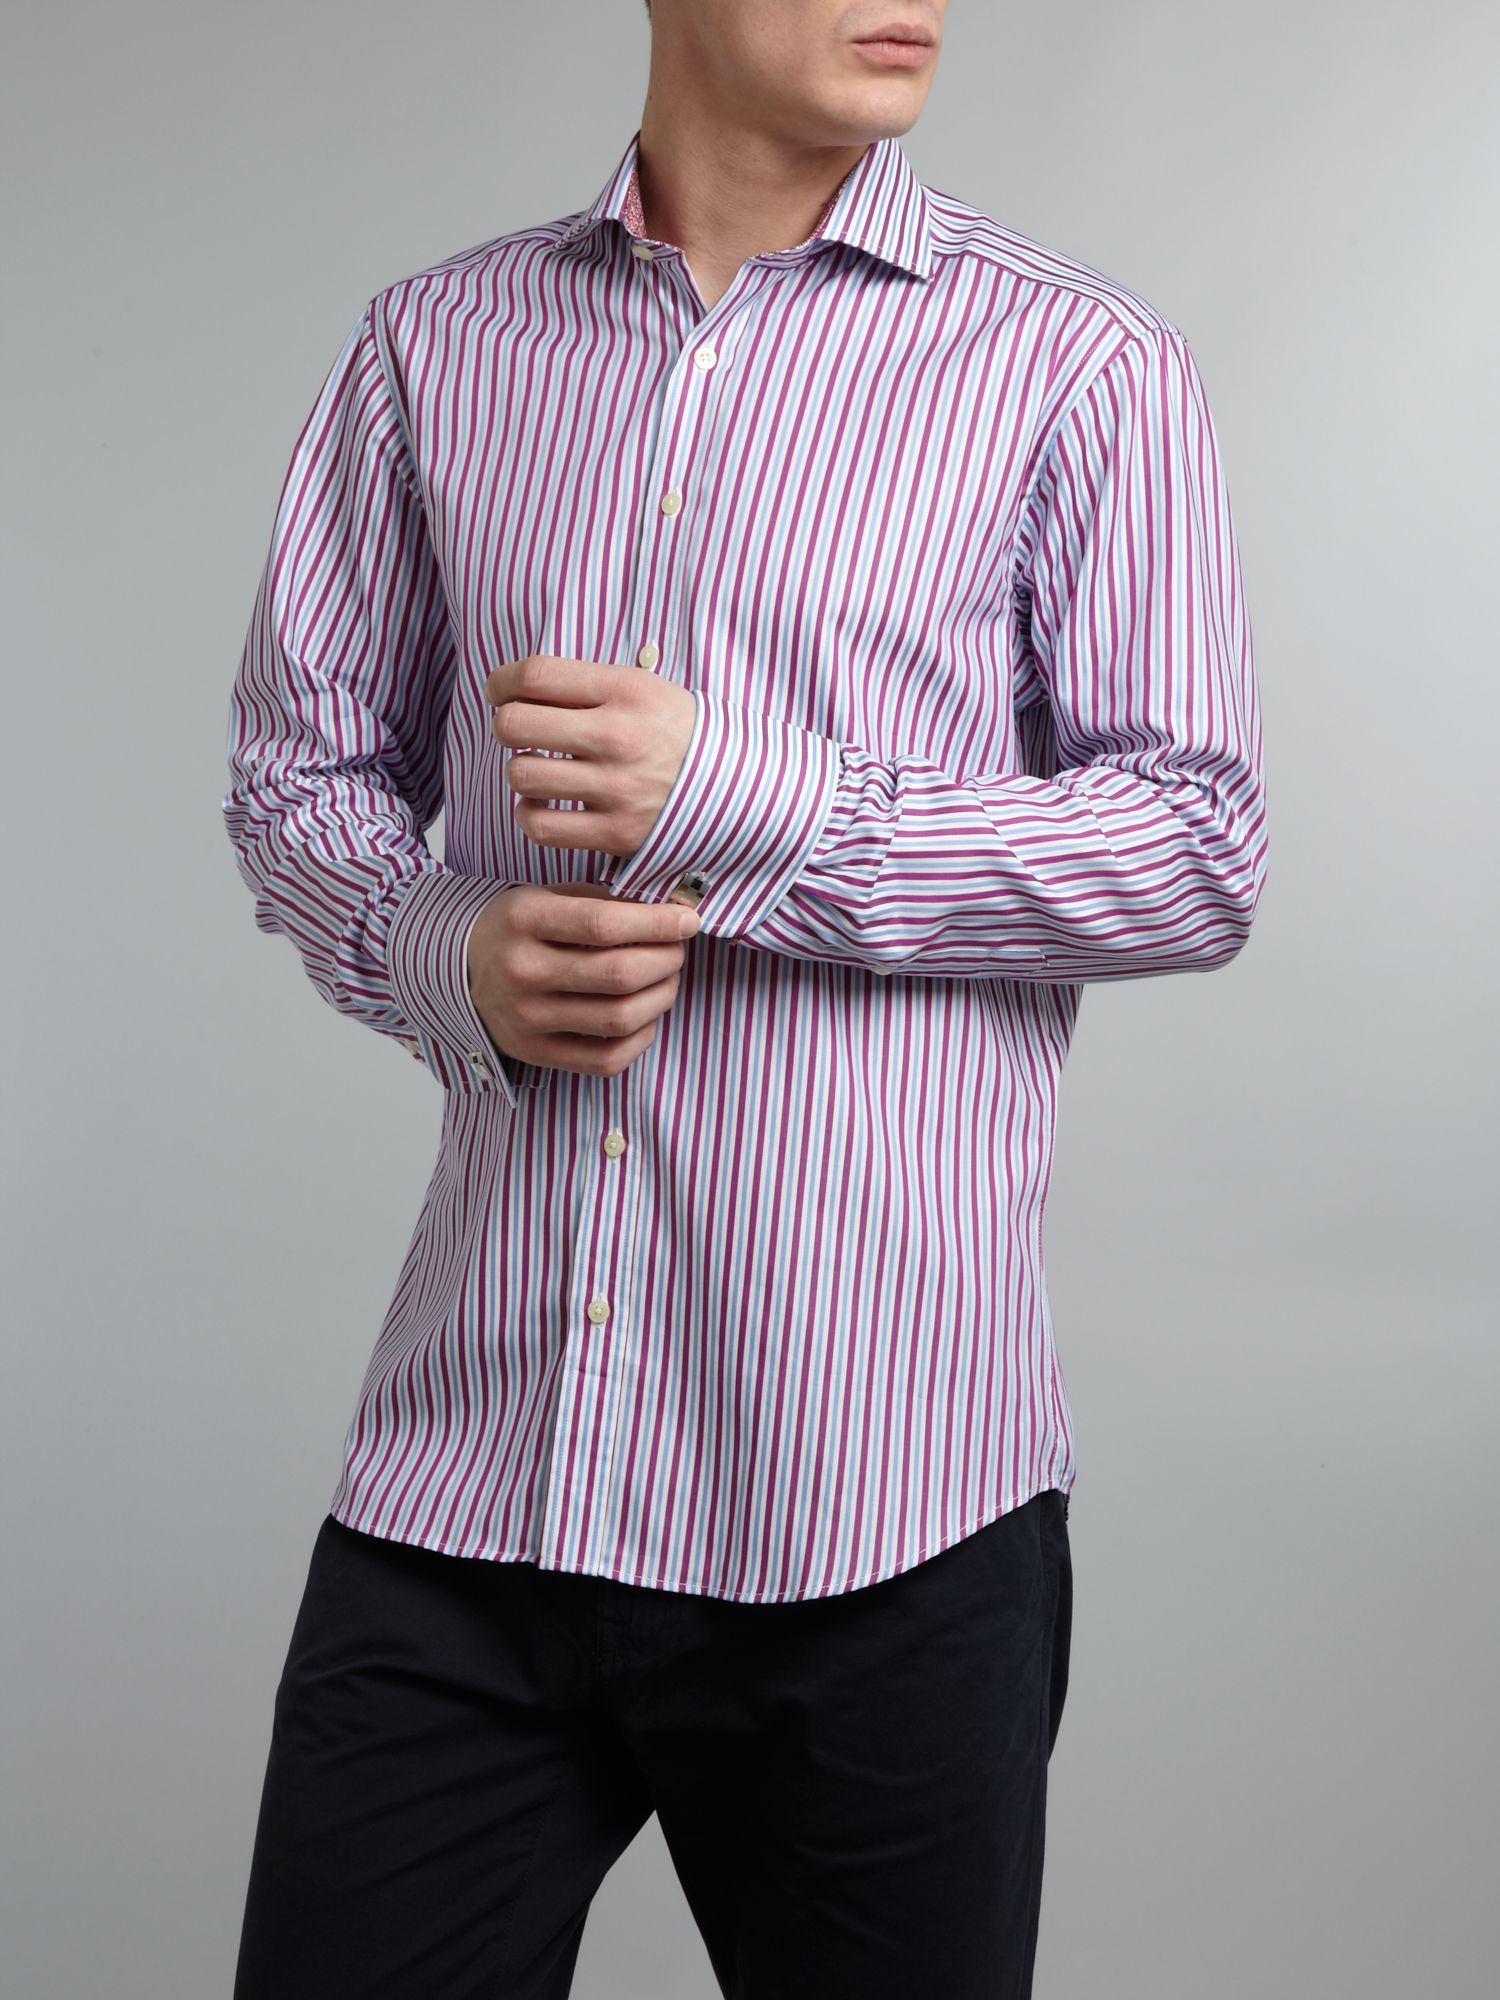 Satin stripe cutaway collar double cuff shirt